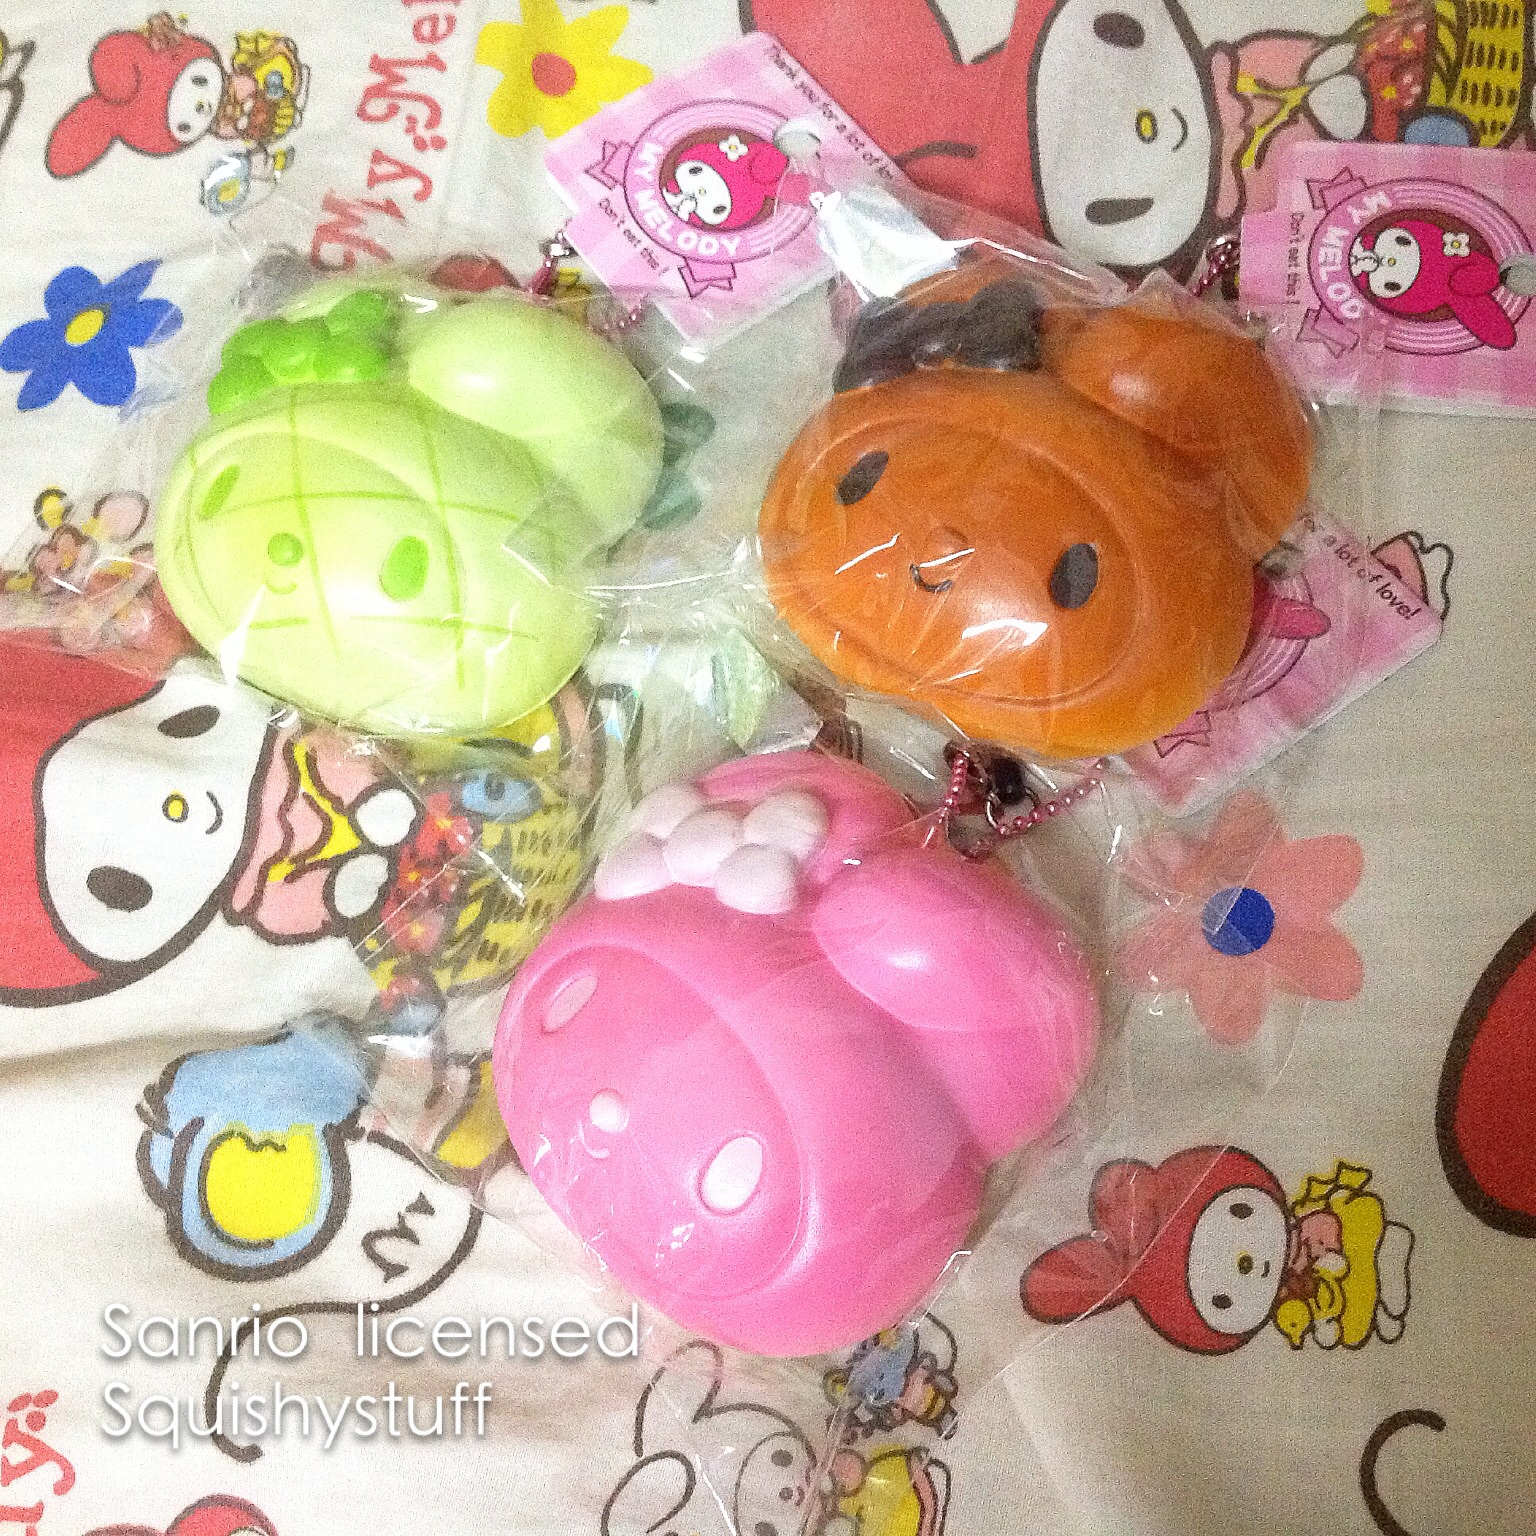 Squishy Collection Naura : ~SquishyStuff~ Sanrio Licensed My Melody Bun Squishy Online Store Powered by Storenvy